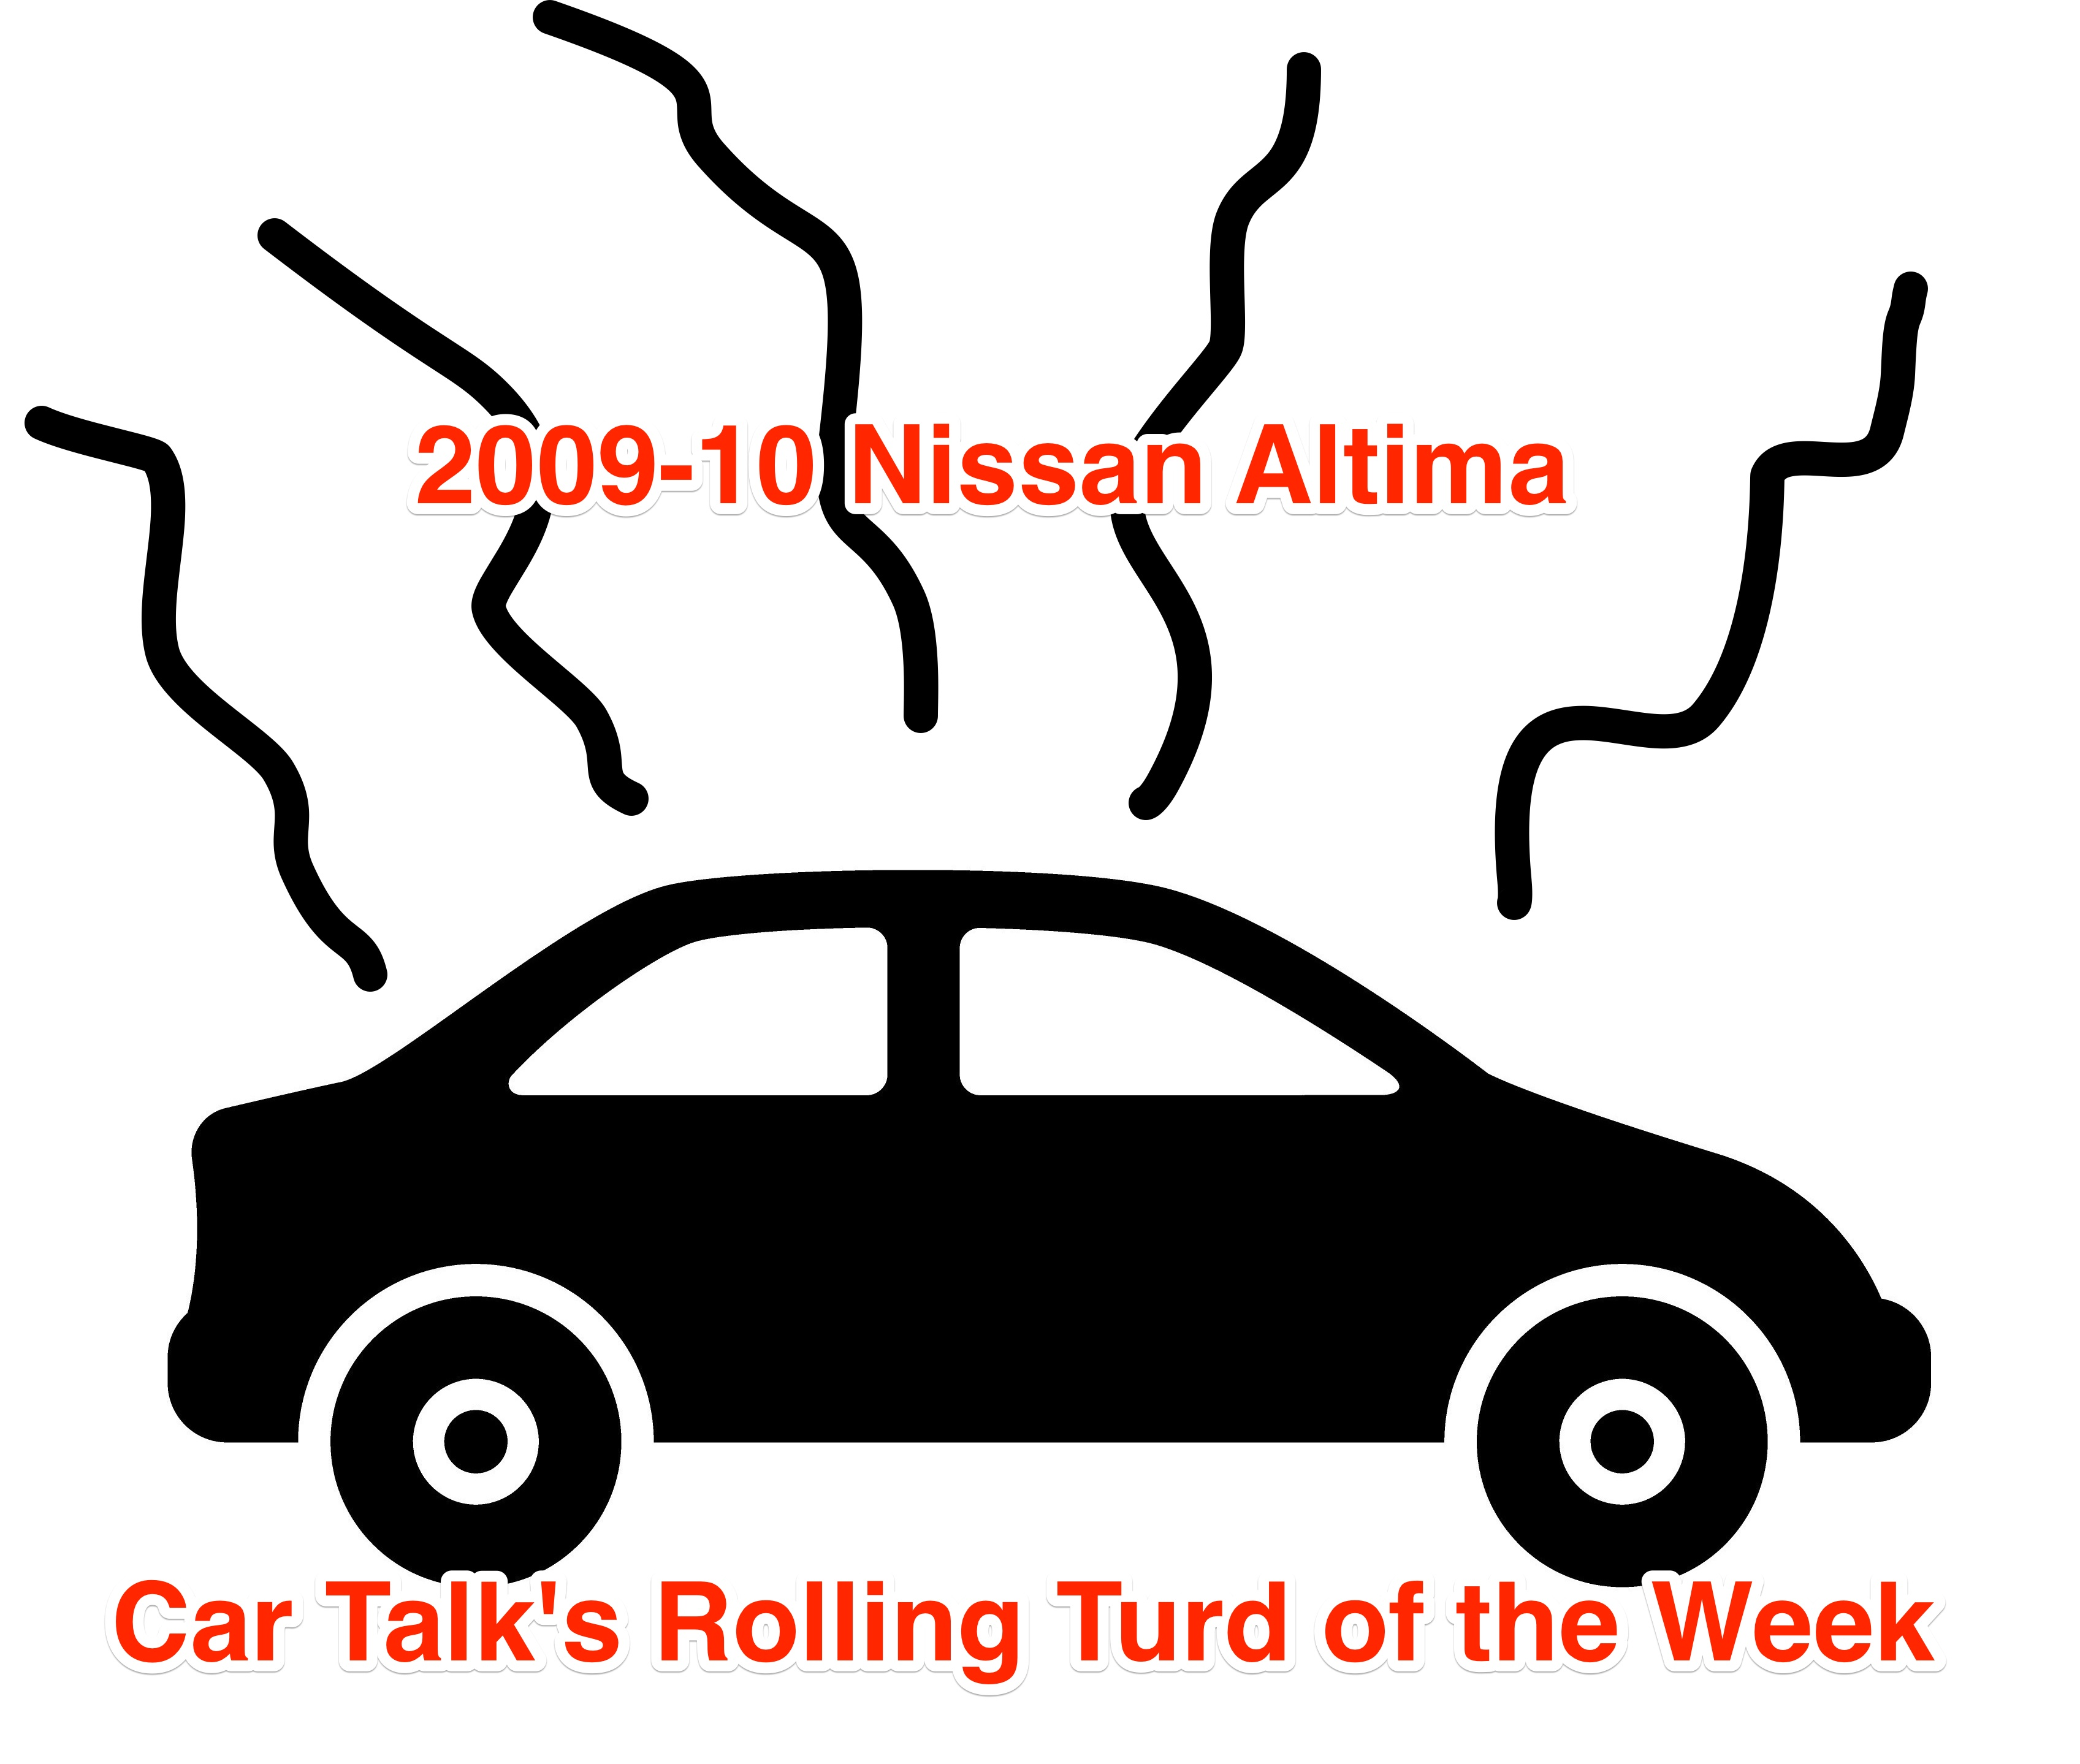 Without further ado, we award this week's turd of the week to: The Nissan Alitma